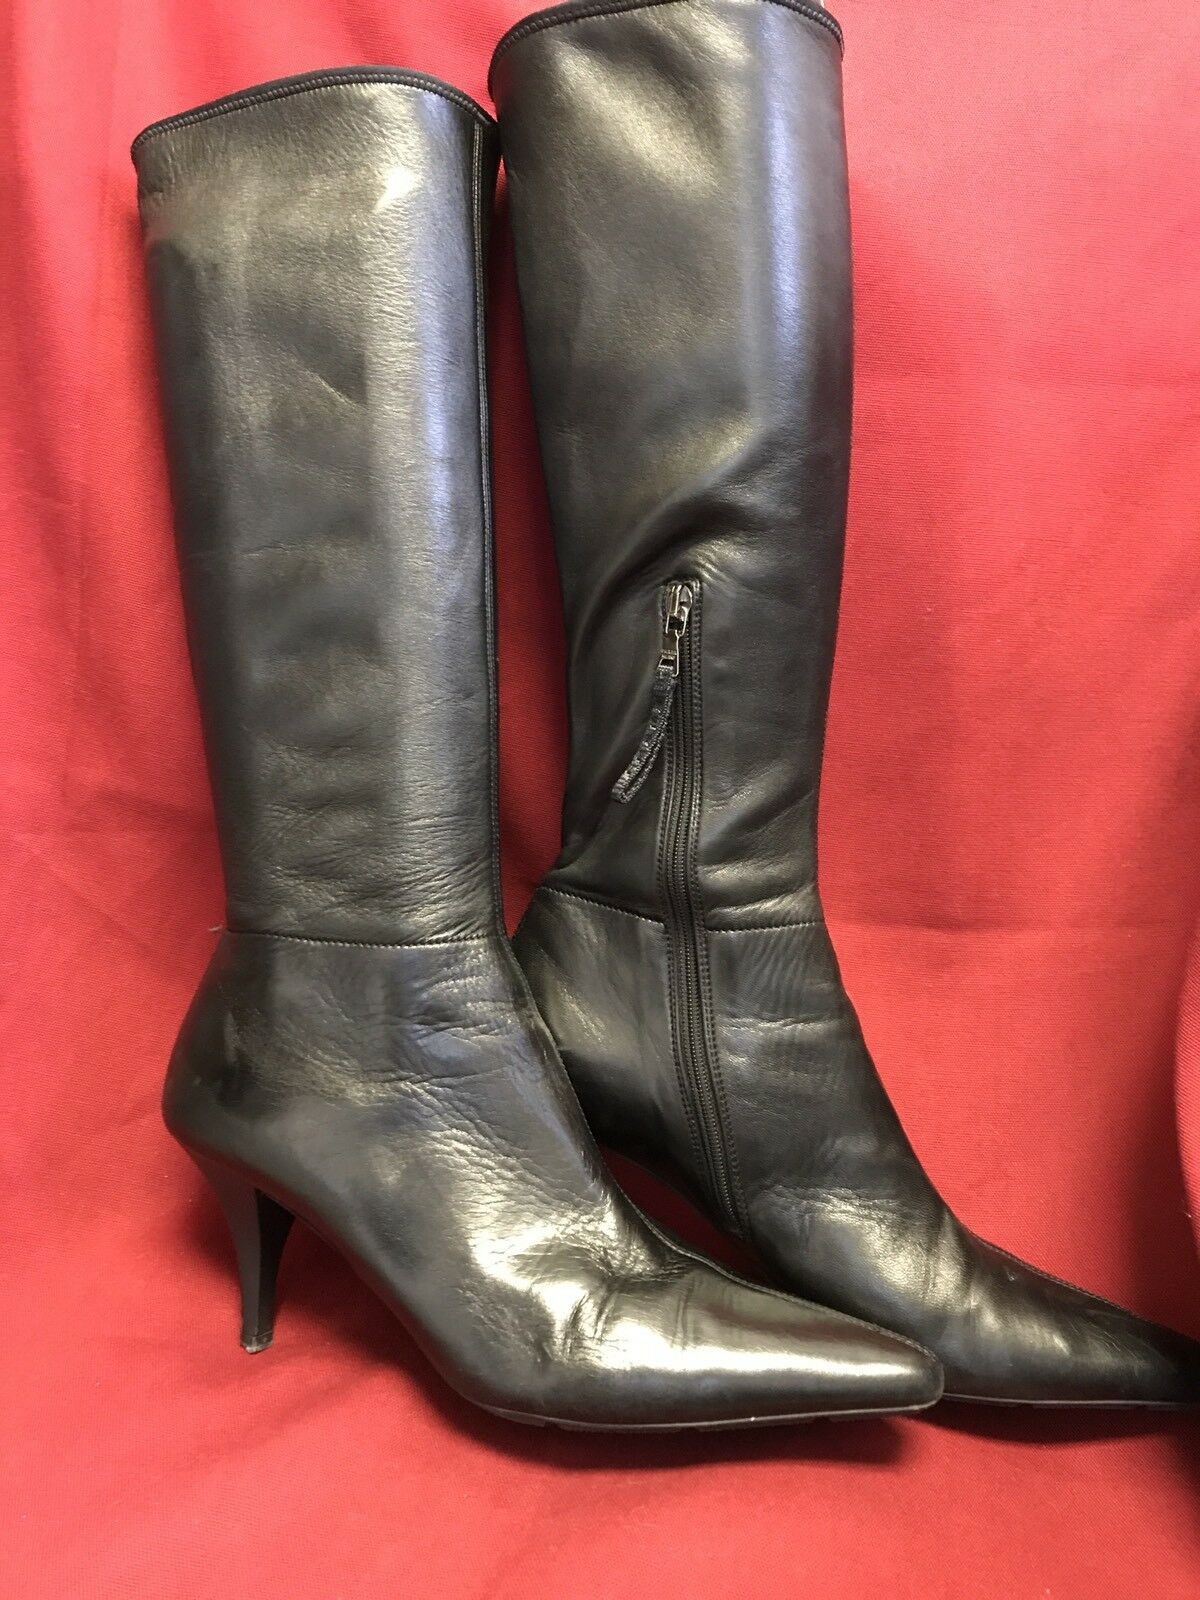 Prada Boots Knee High High High Kitten Heel Leather Black Size 38 1 2 US 8 9d8988